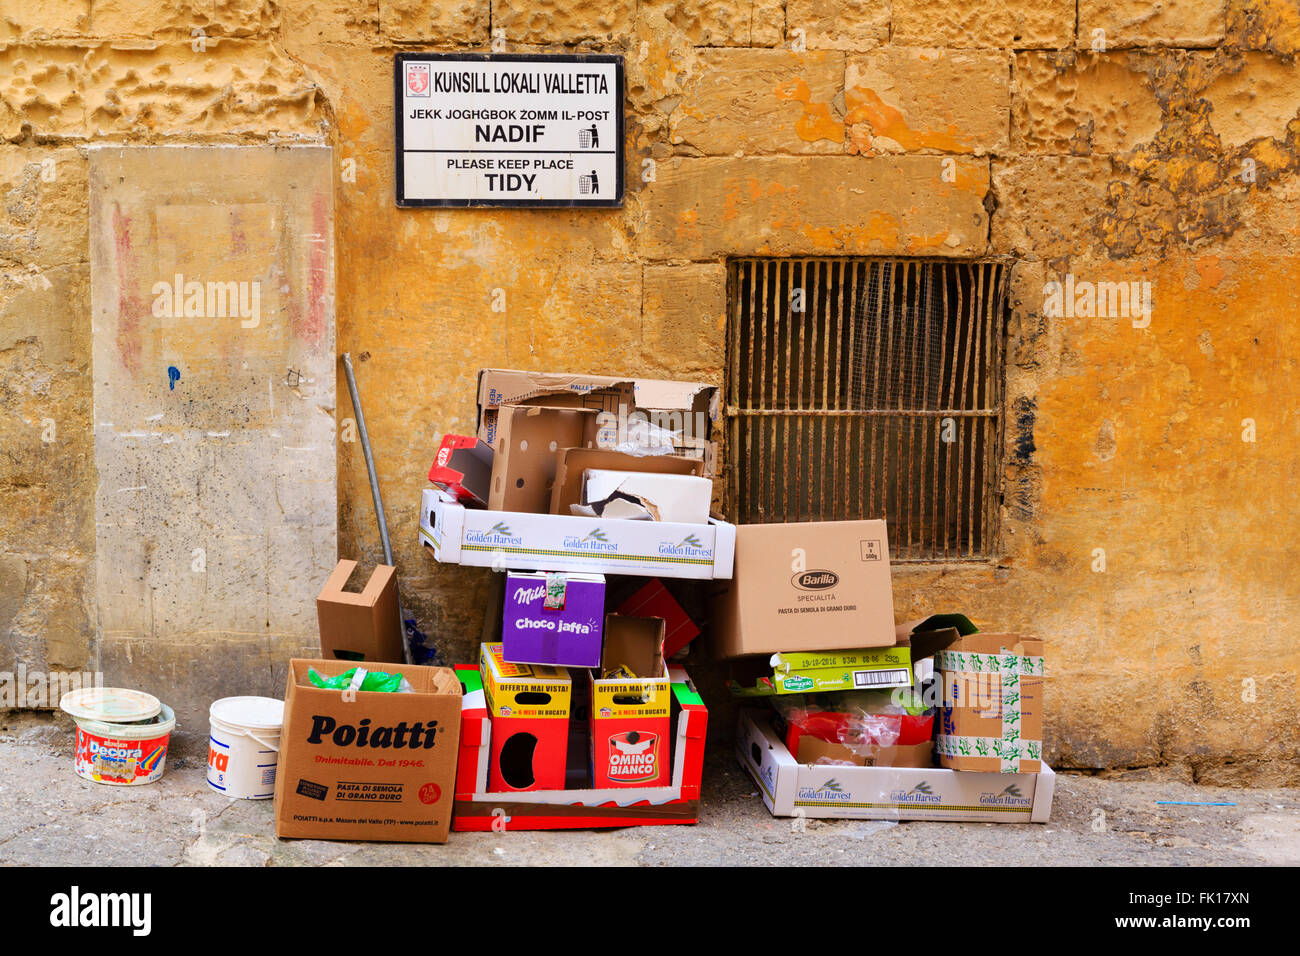 Sign asking to keep tidy on wall above pile of empty boxes and rubbish, Valletta, Malta. - Stock Image